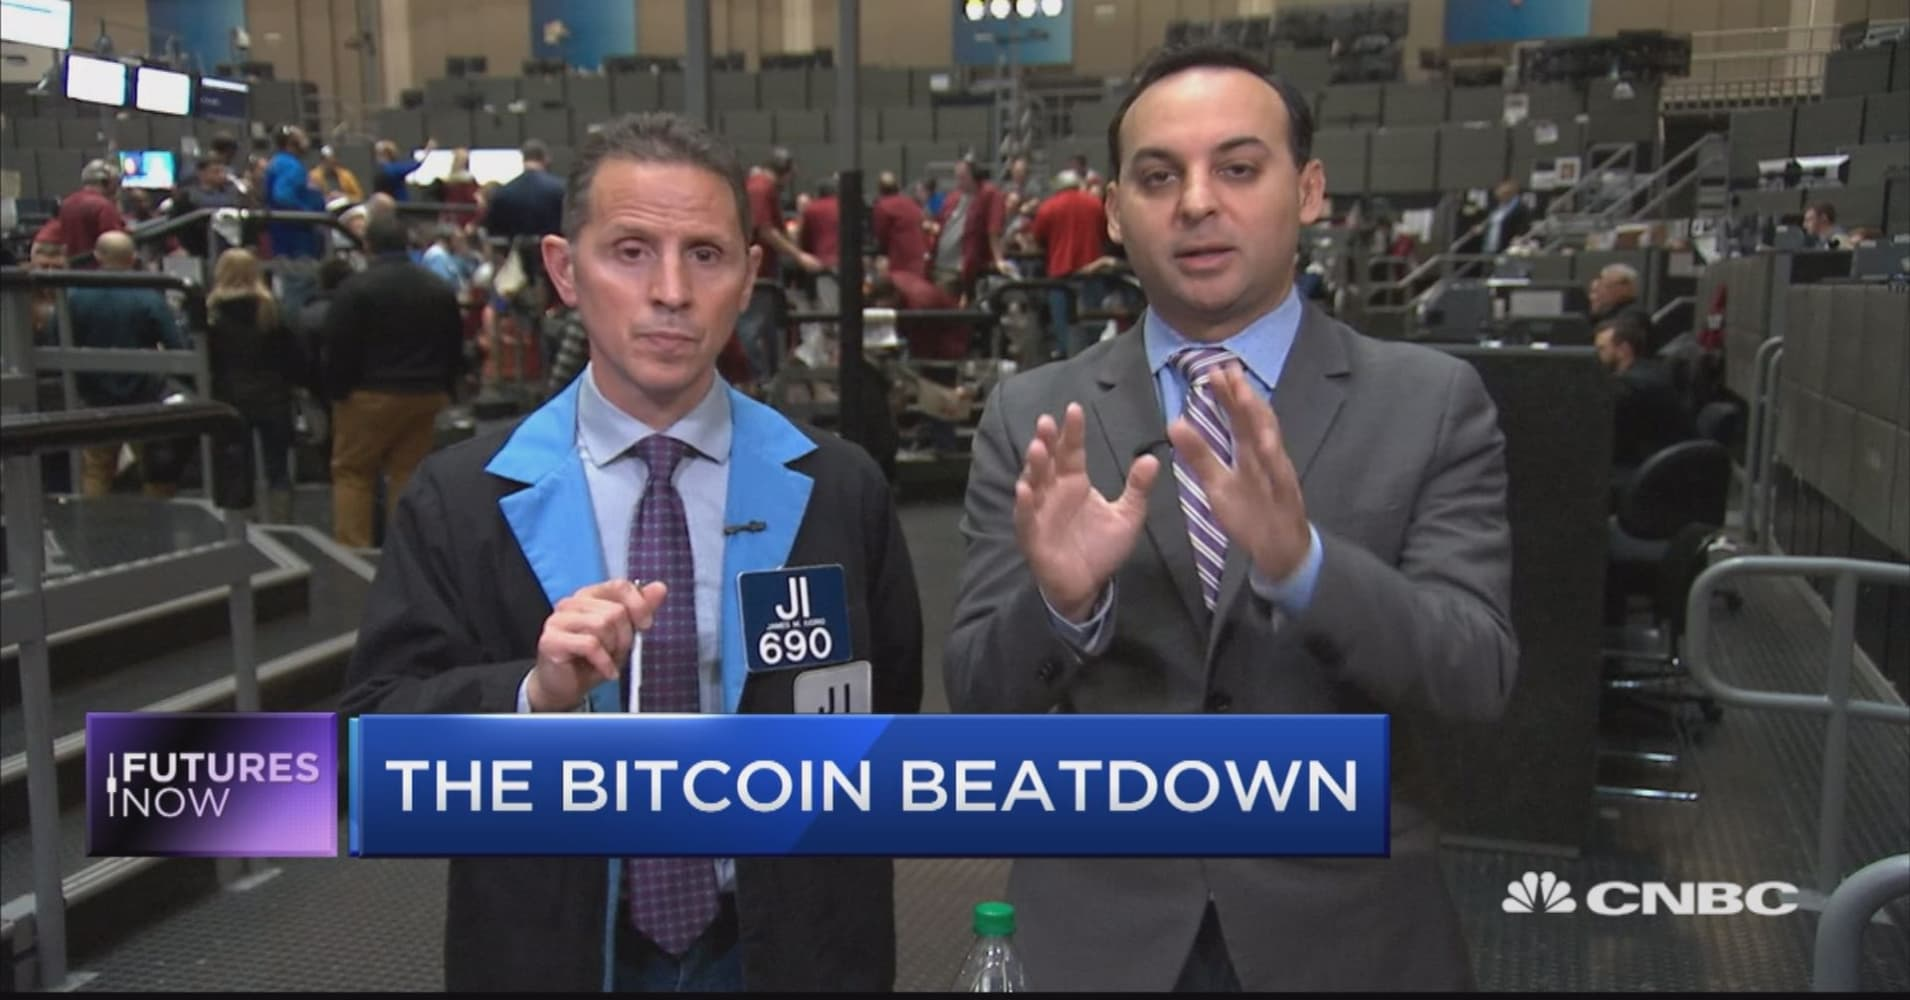 Bitcoin is getting hammered, and trader says it could break $5,000